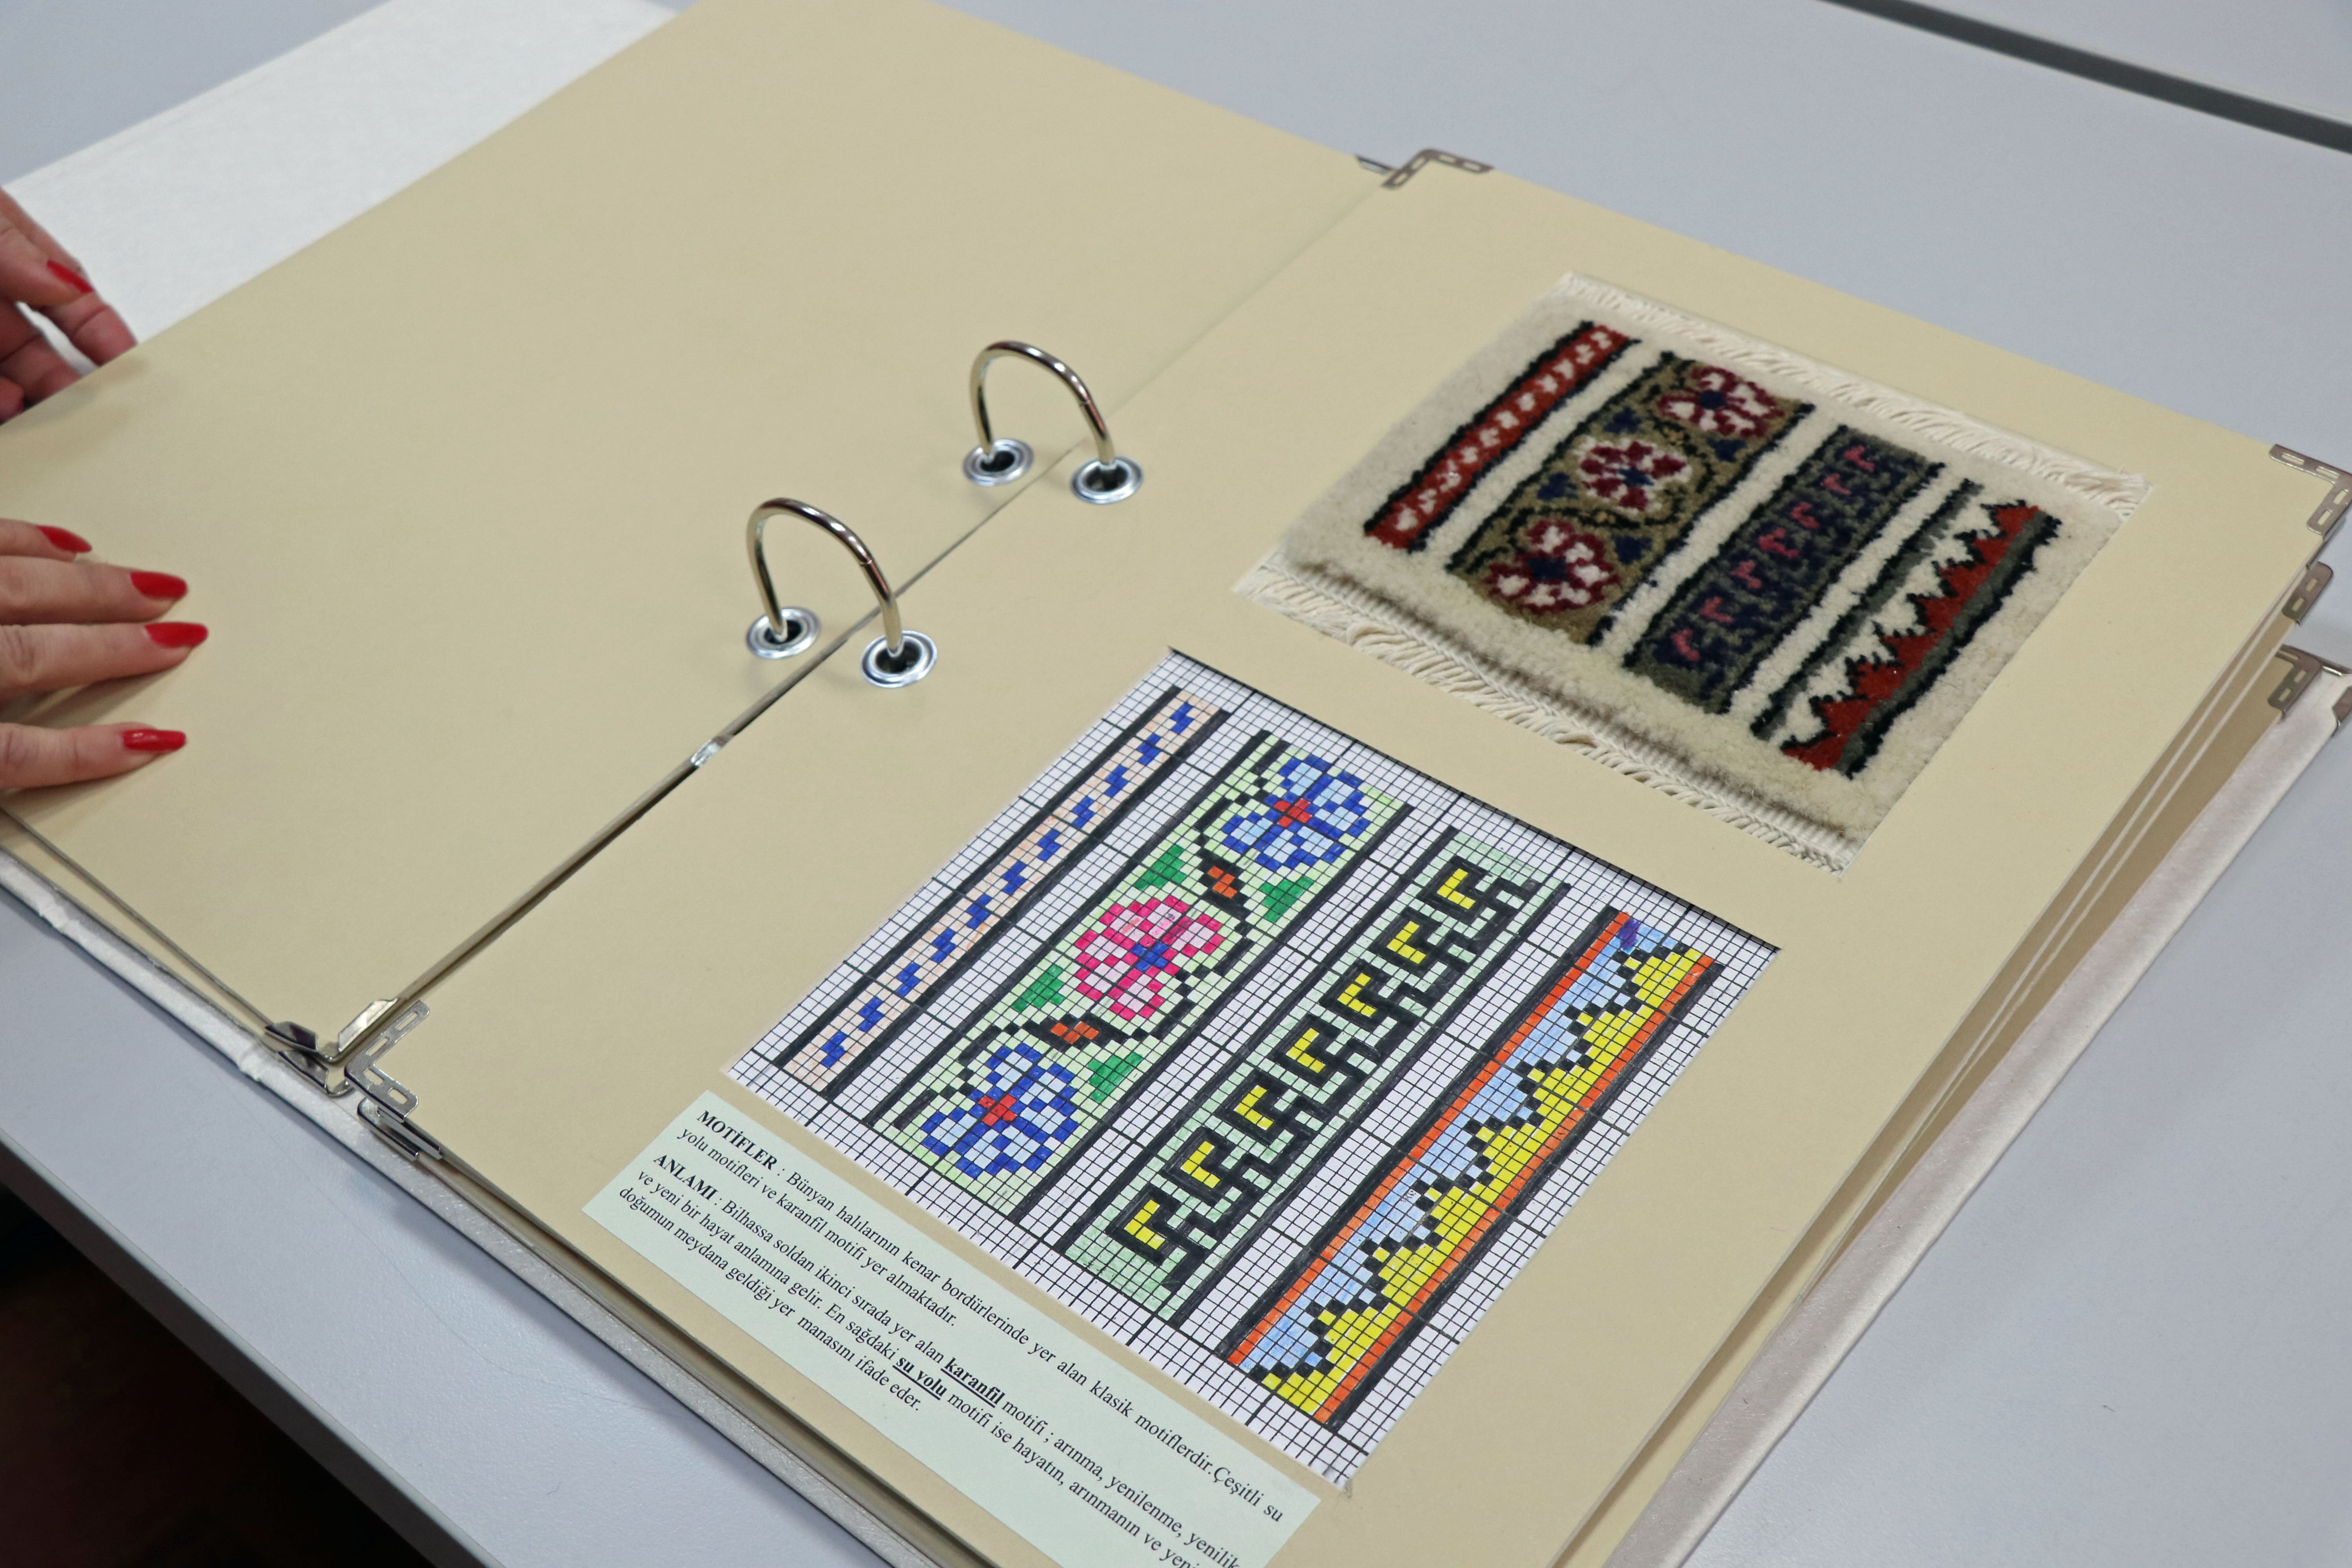 A swatch card showing a motif and how it is embroidered. (AA Photo)